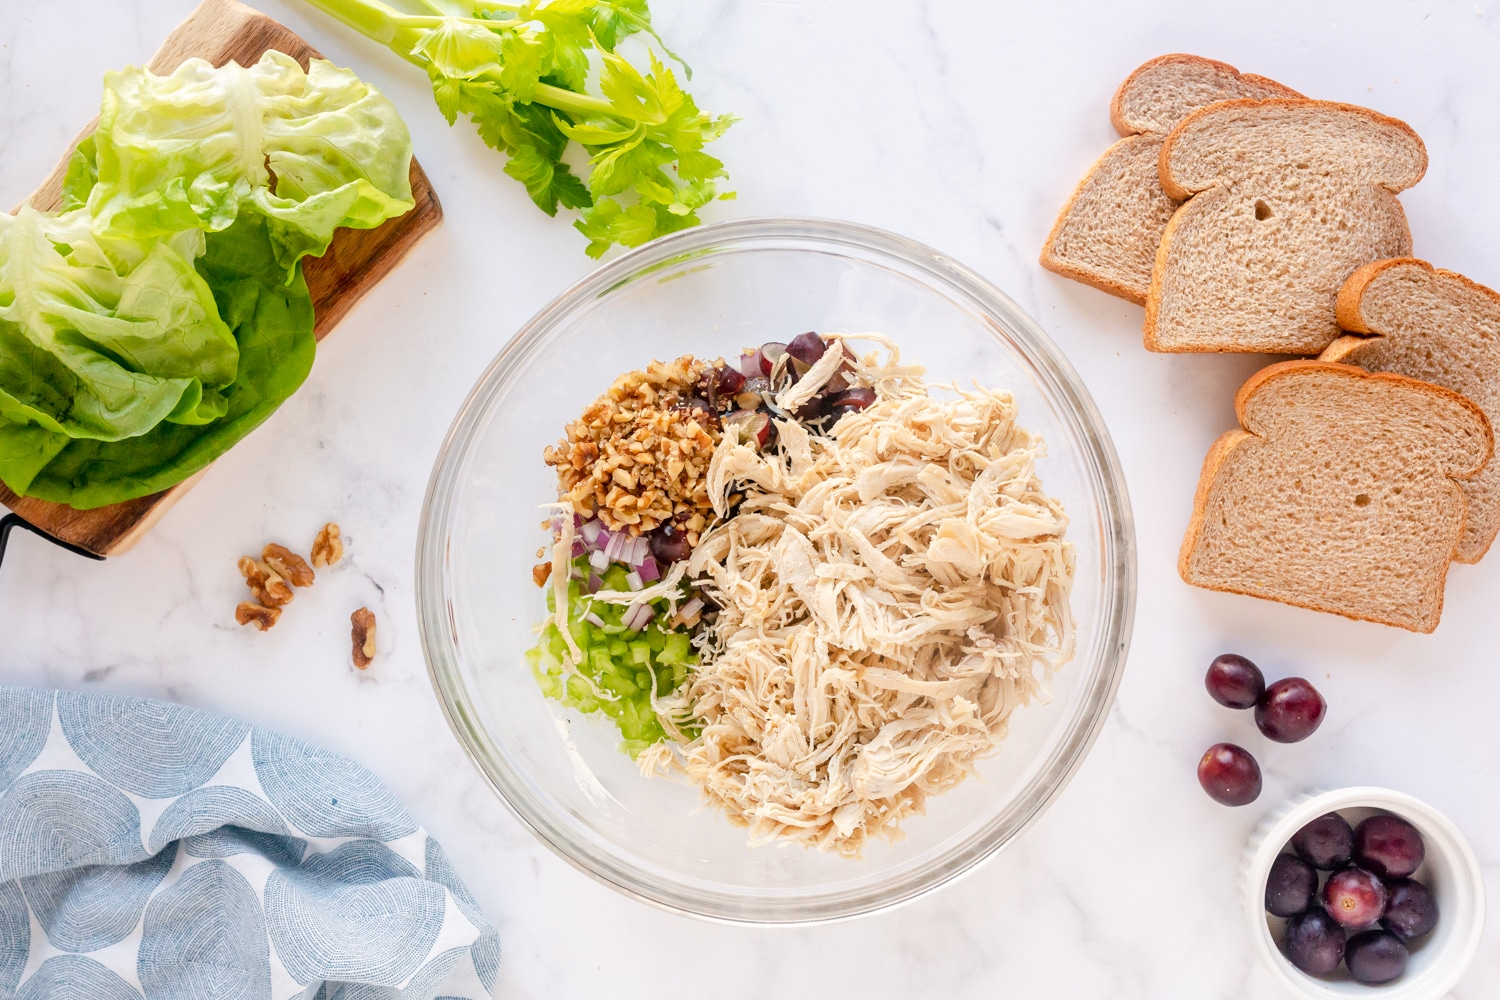 chicken salad ingredients in mixing bowl- chicken, grapes, walnuts, celery and red onion